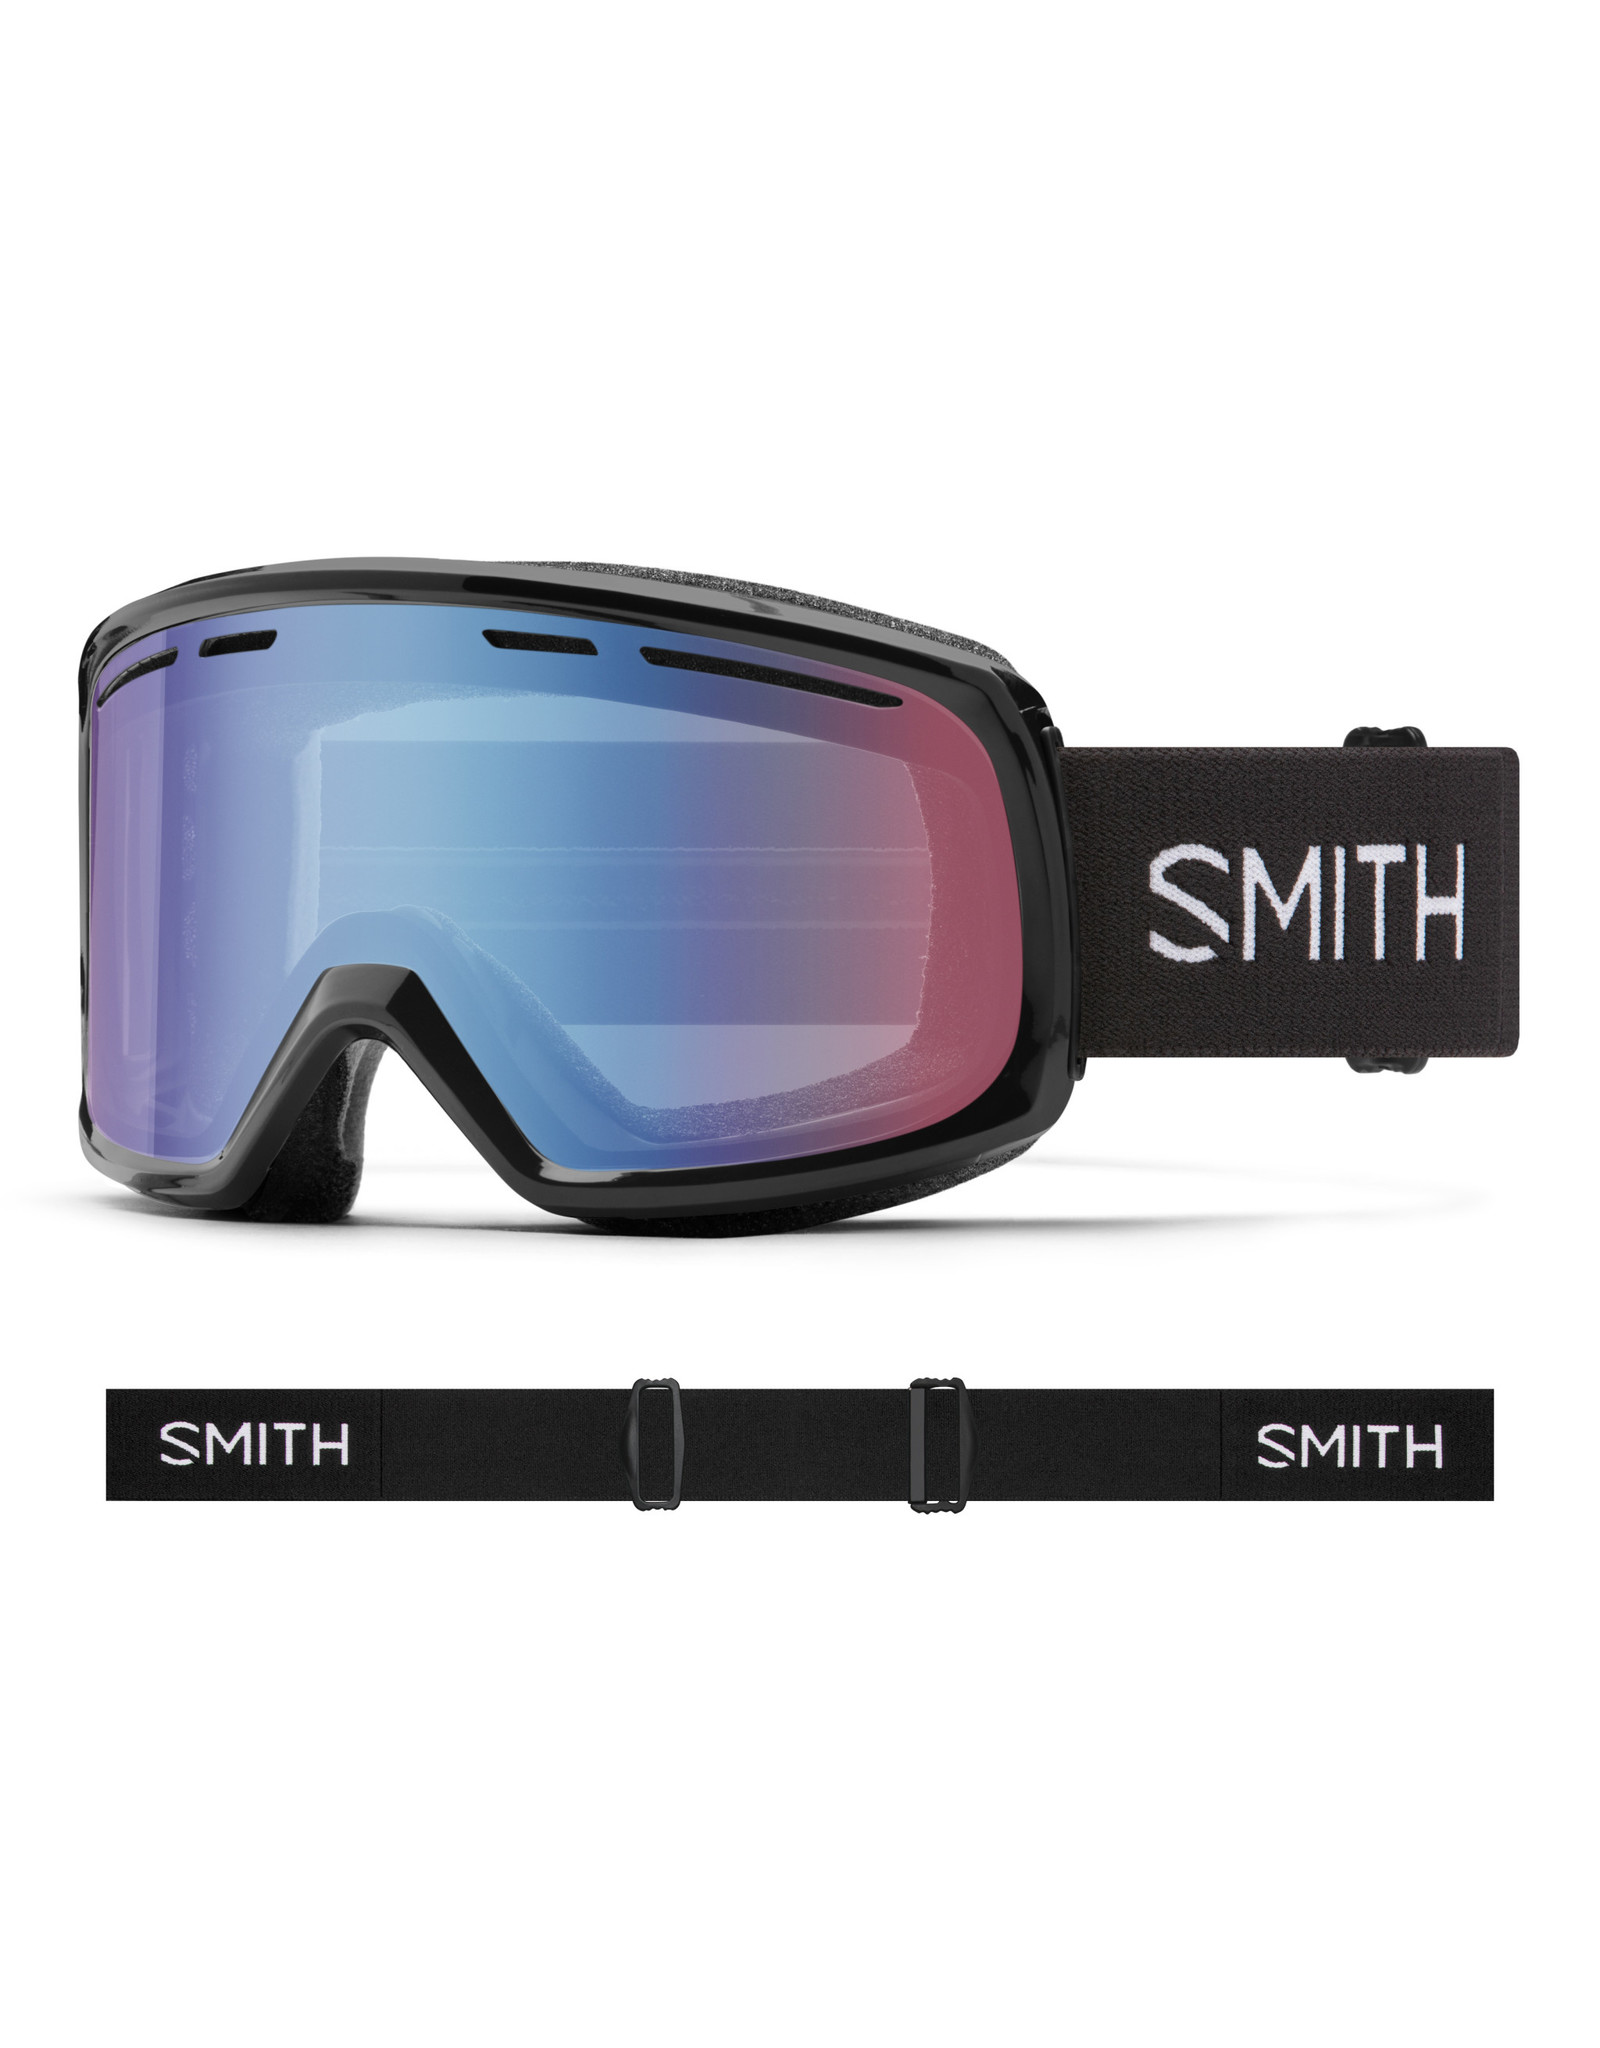 Smith SMITH RANGE BLACK 20 SKI GOGGLE